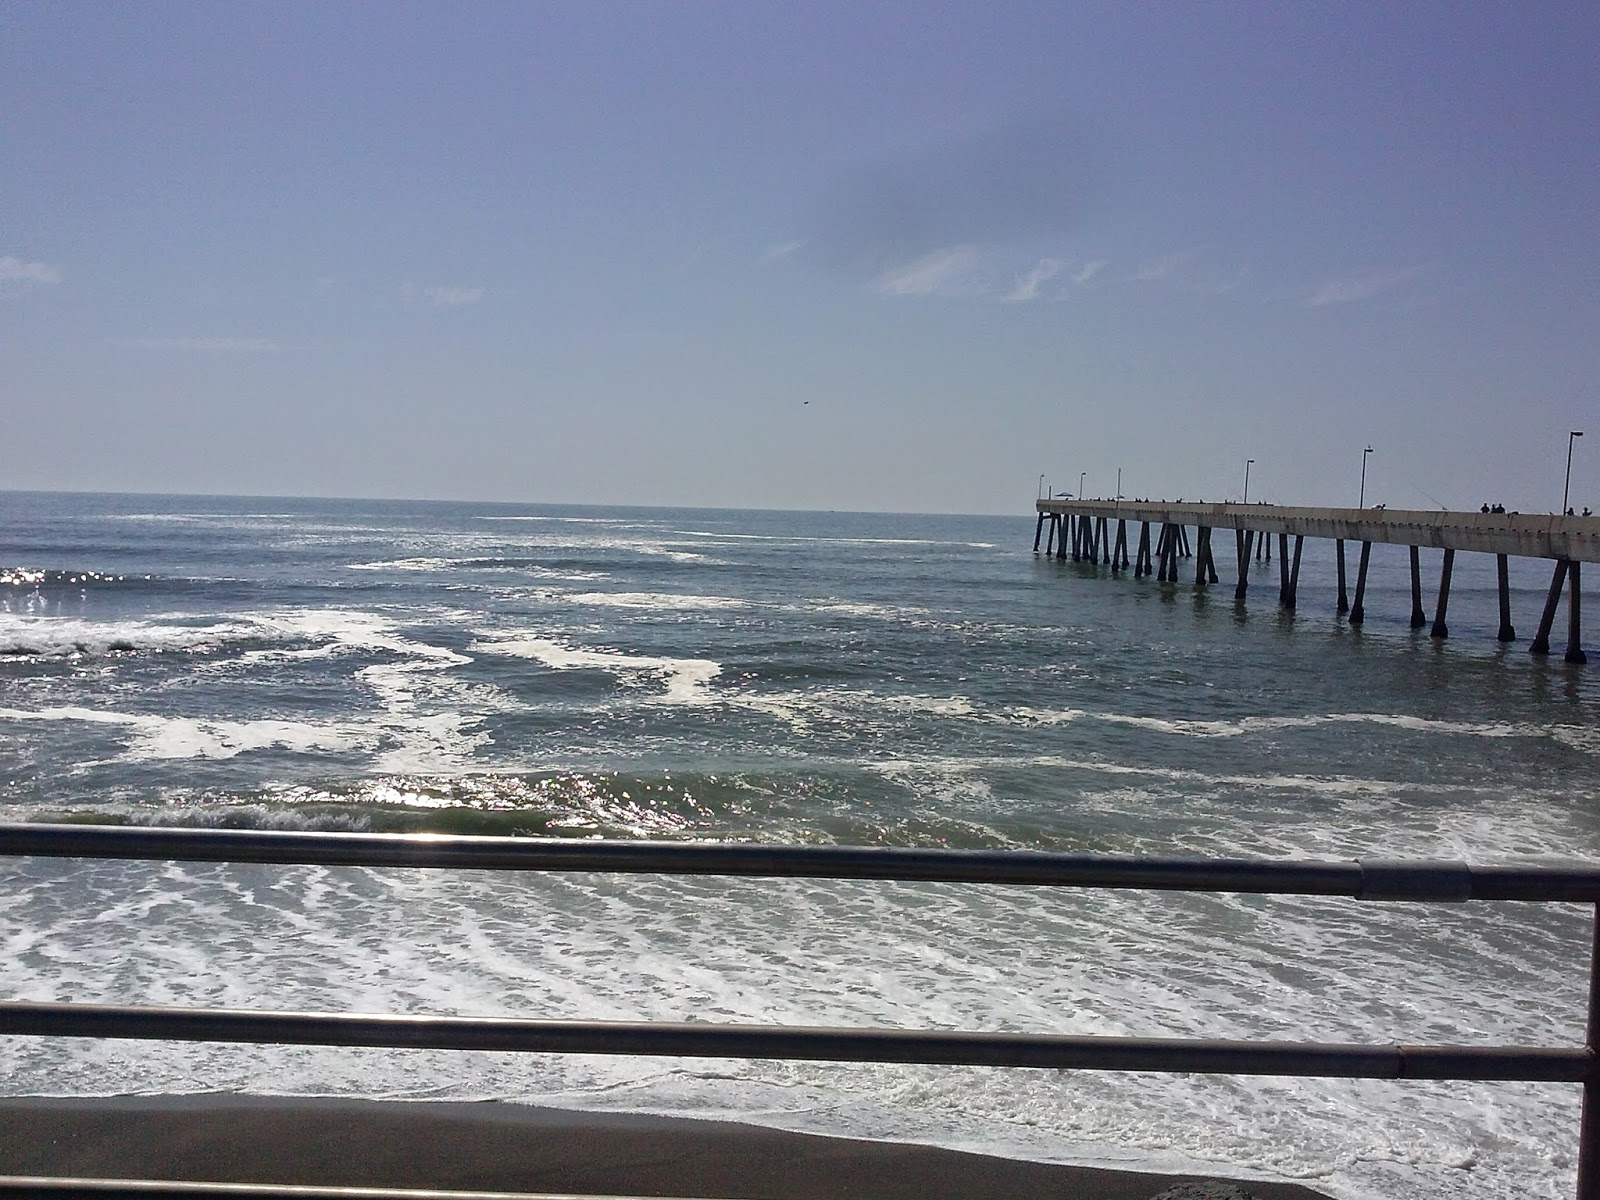 Hunting and fishing california pier fishing in pacifica for Surf city pier fishing report facebook